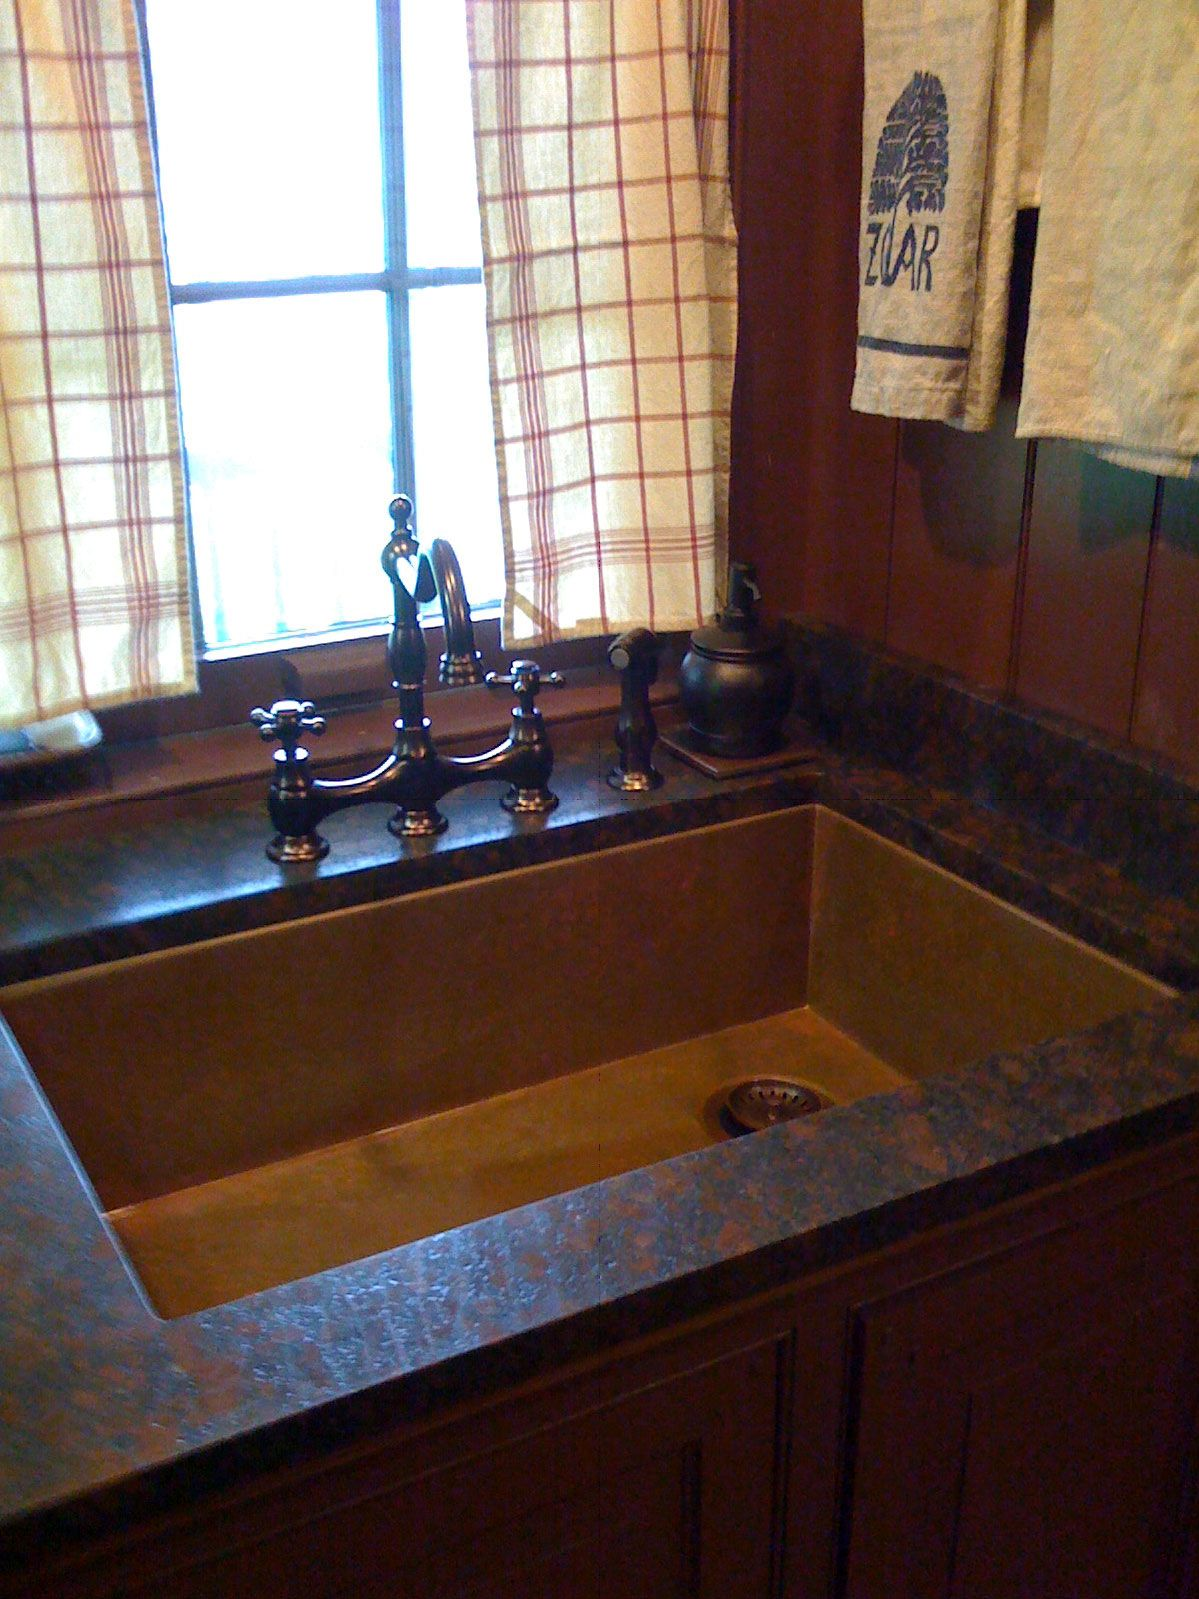 Copper under mount sinks made in the USA by Rachiele I want a few ...